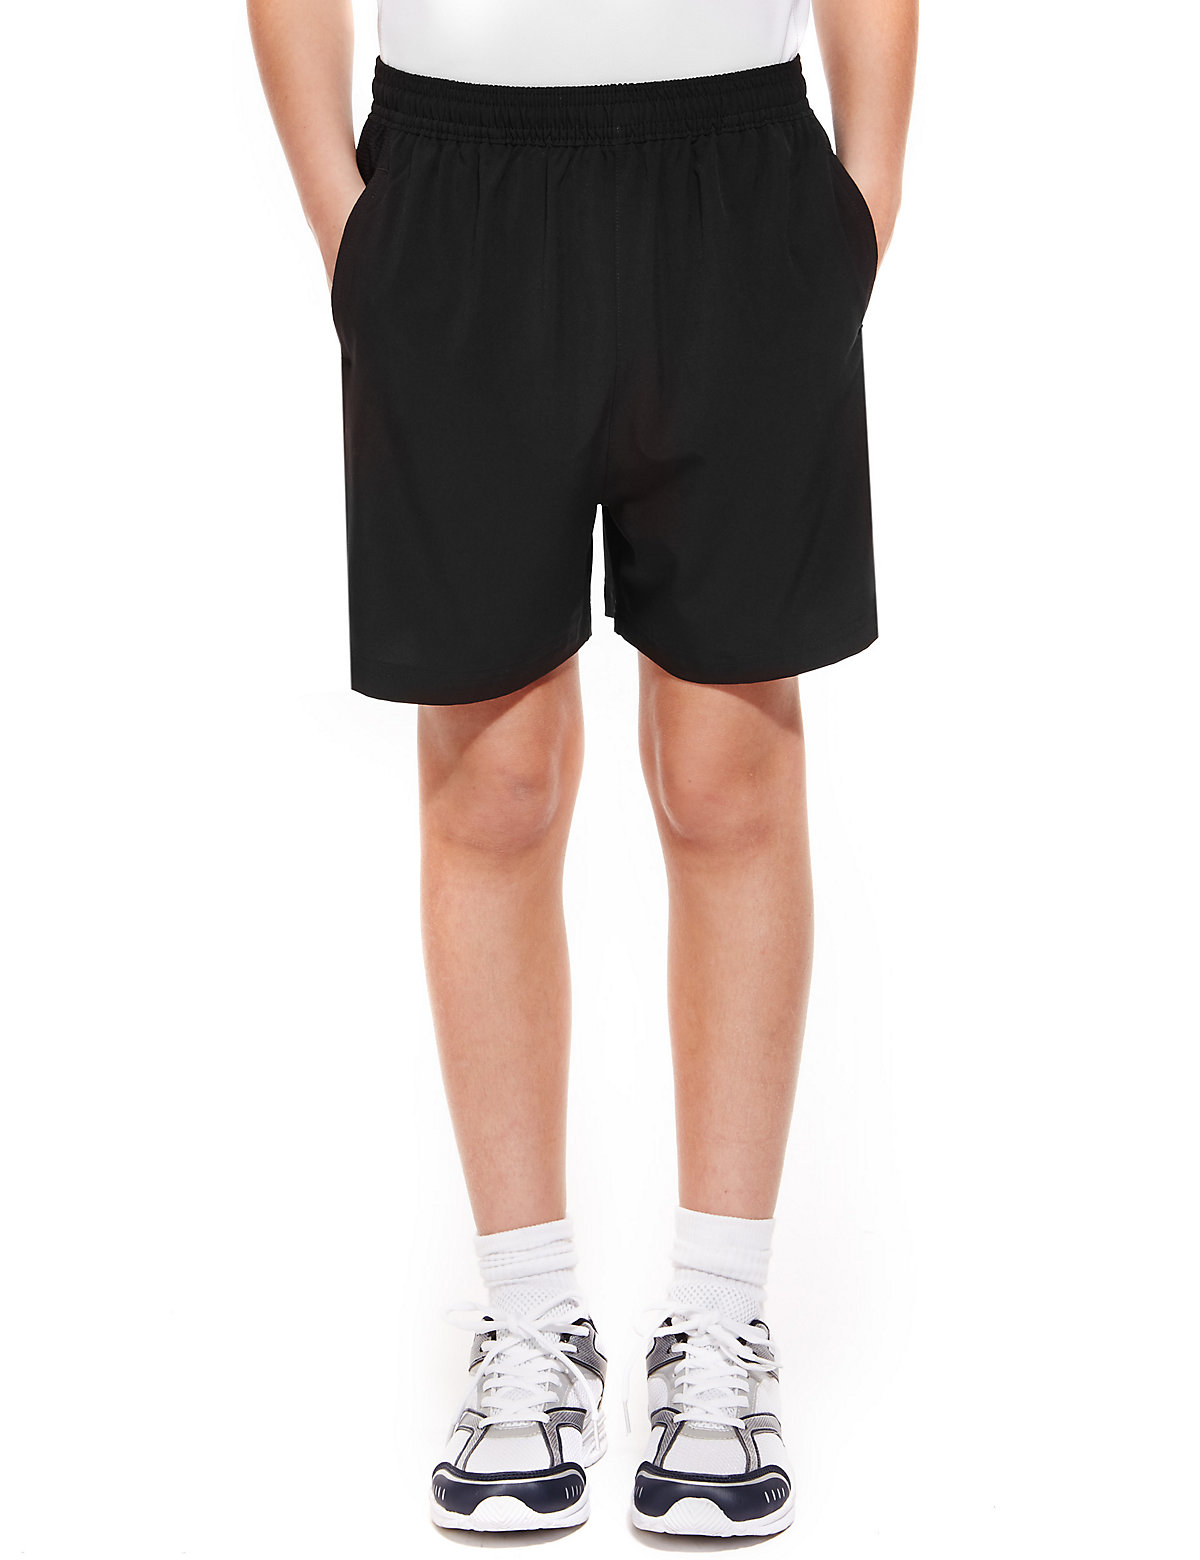 Boys Sport Shorts with Active Sport